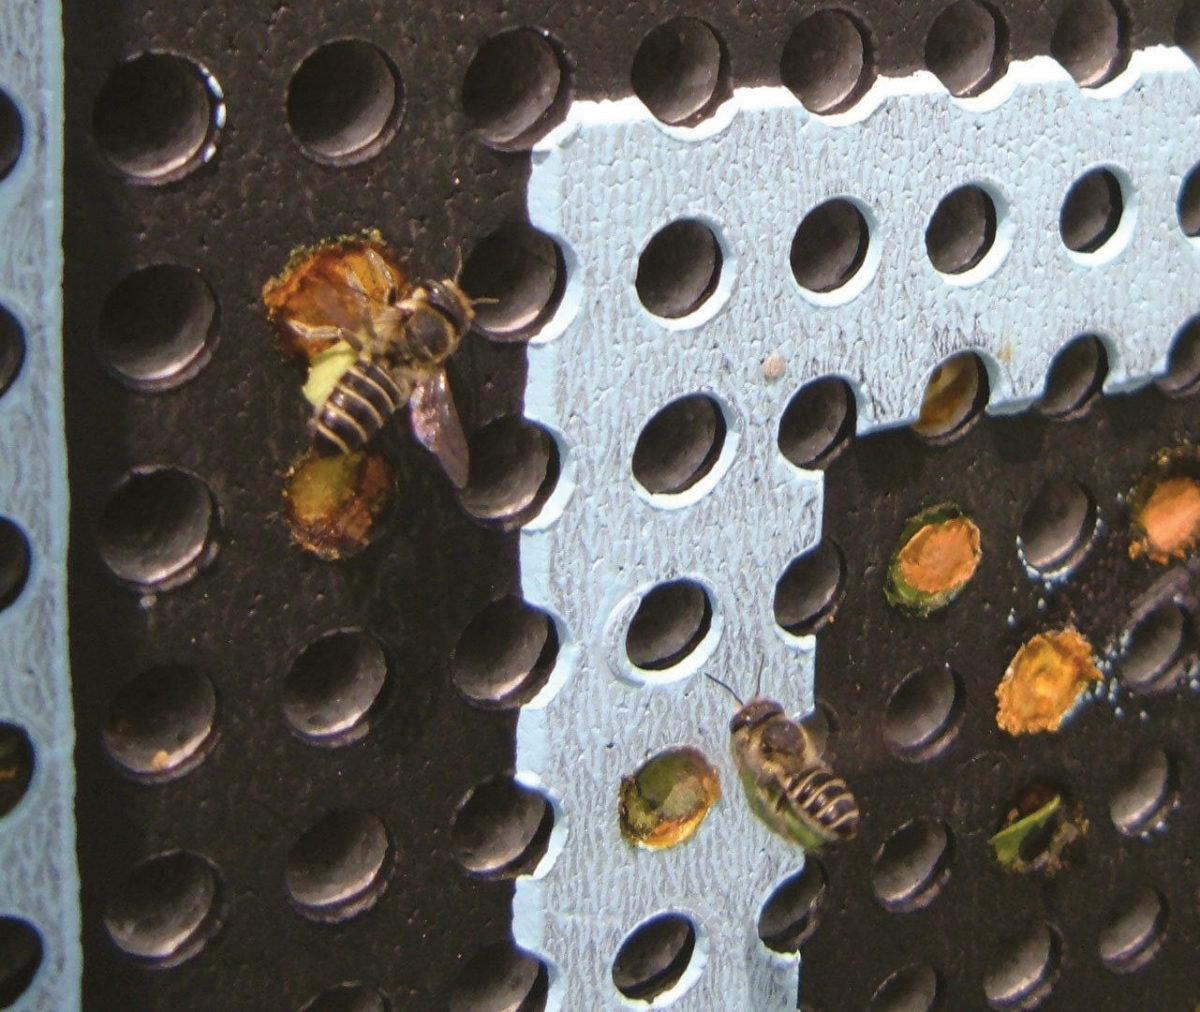 Returning bees carrying cut leaf sections that will be used to line the nest interior.